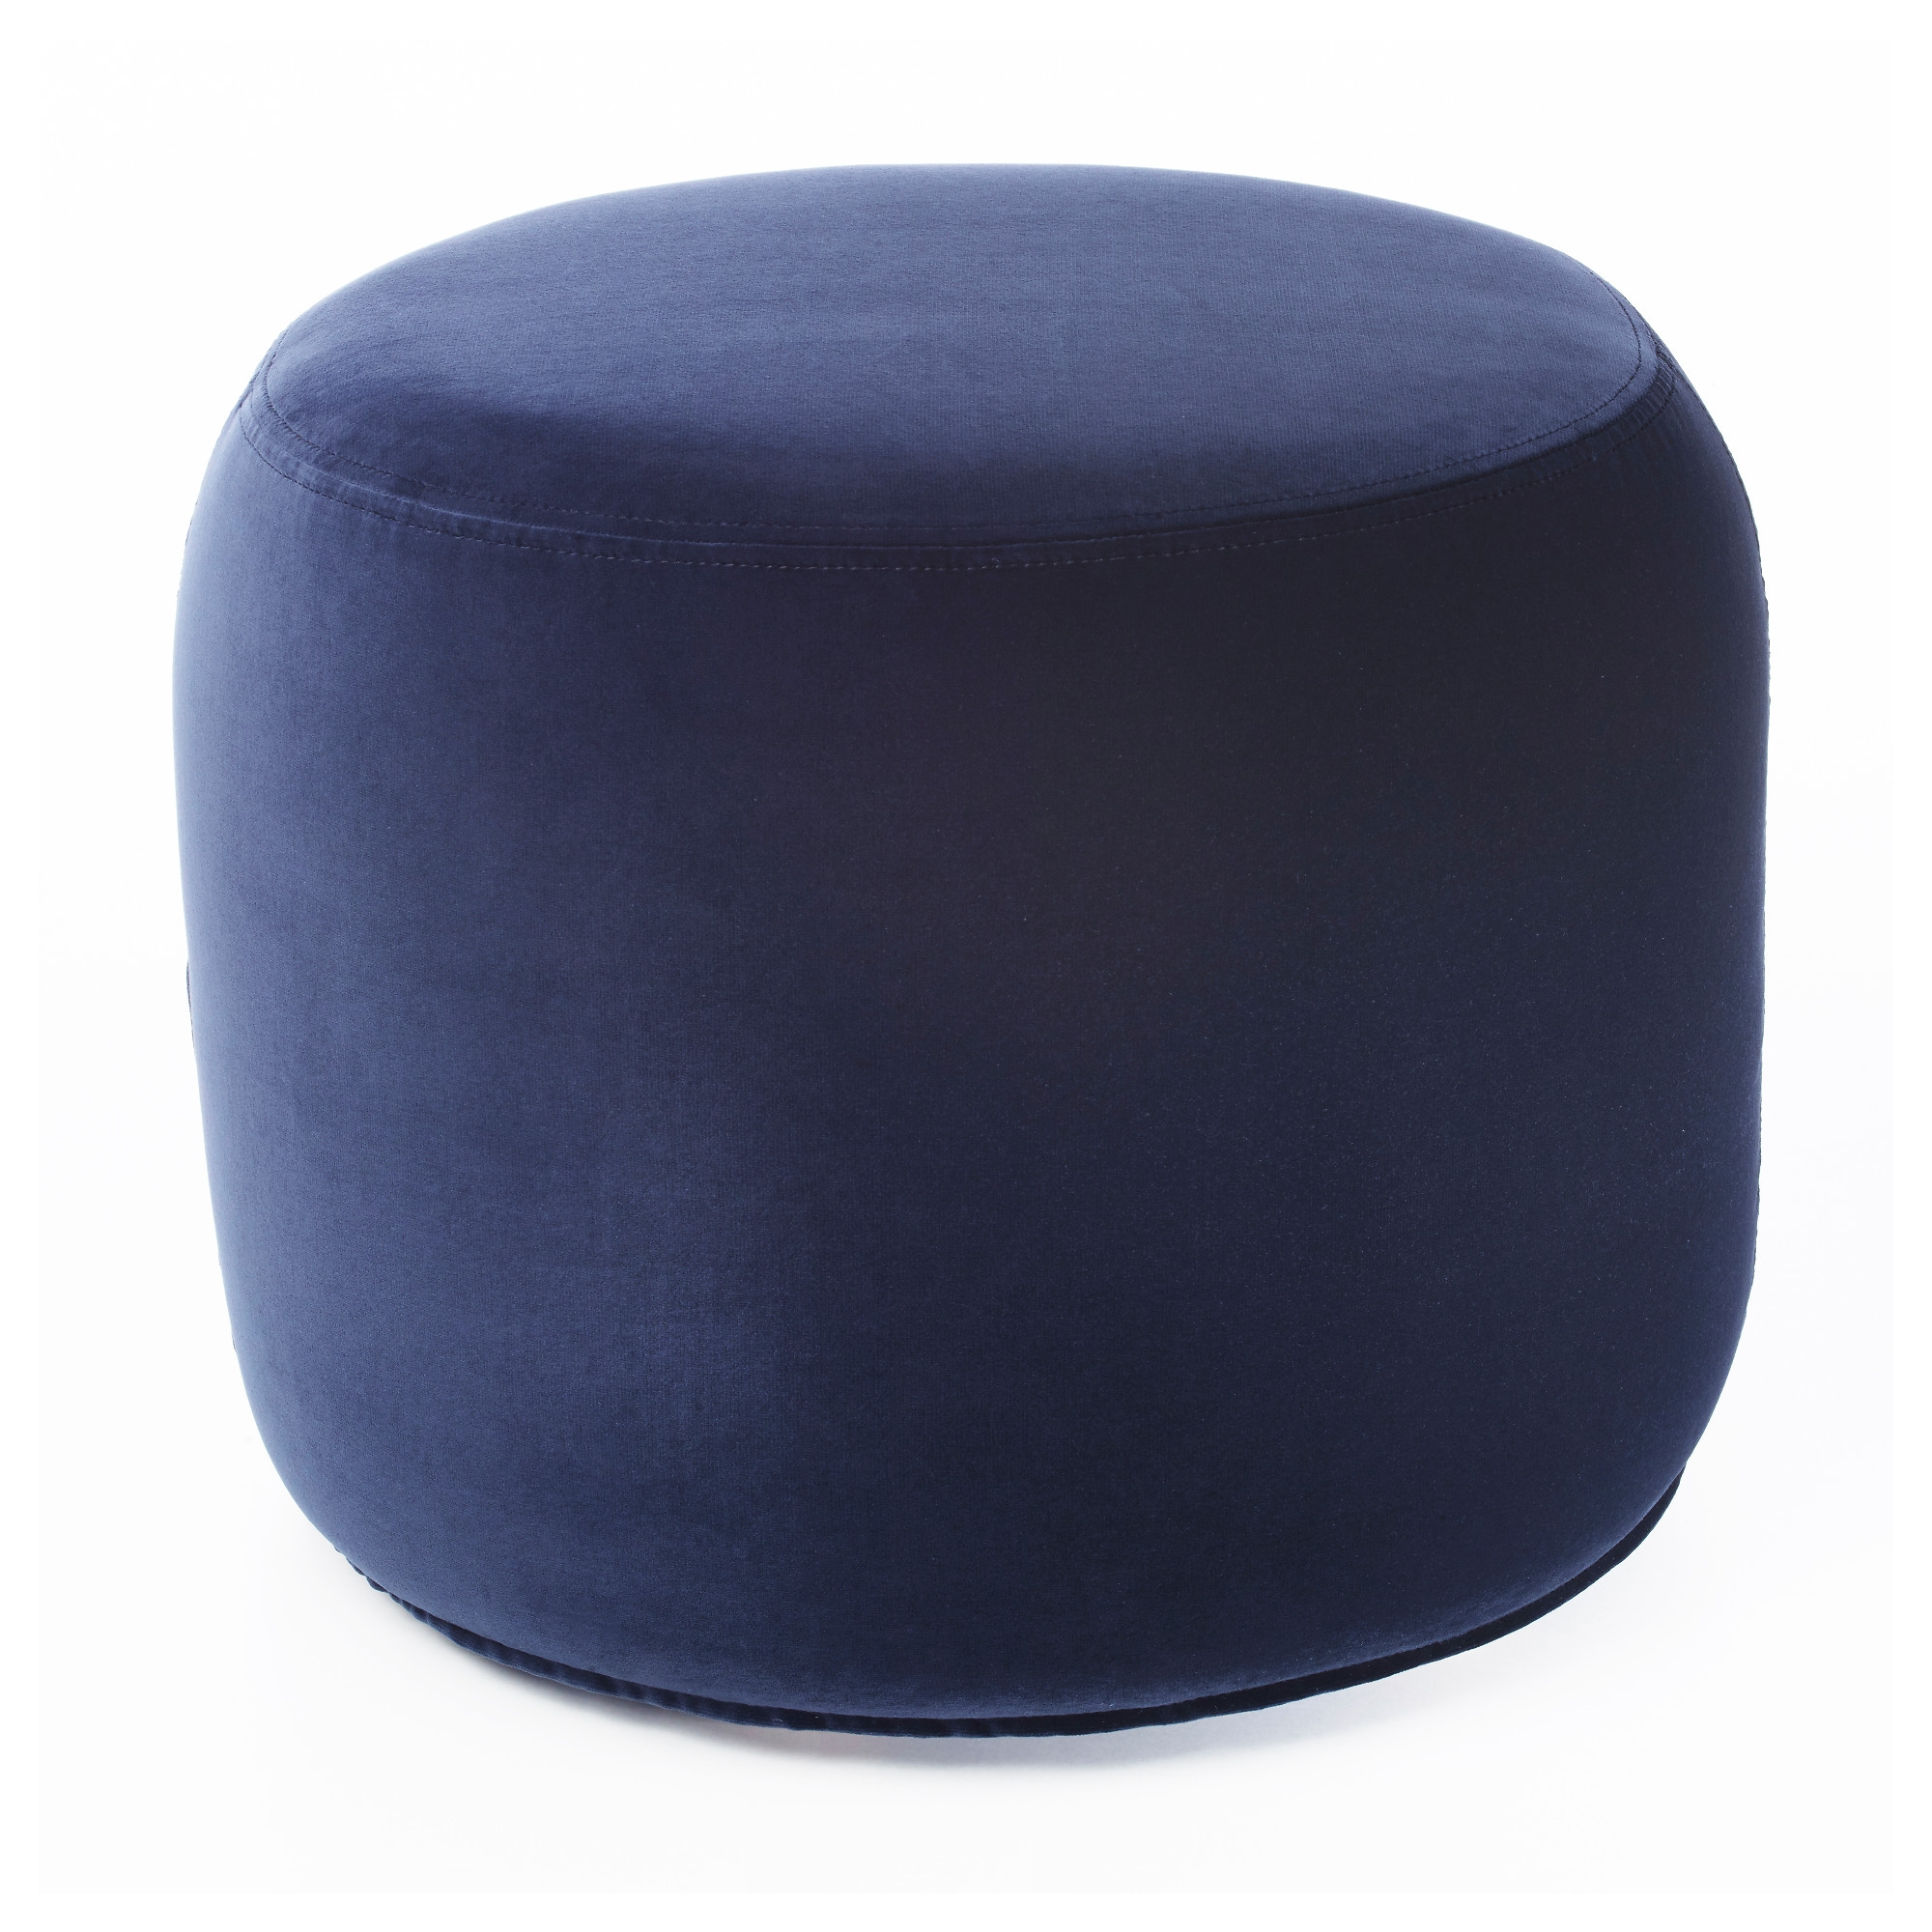 Fabric Footstools Fabric Pouffe Ikea In Fabric Footstools And Pouffes (Image 3 of 15)